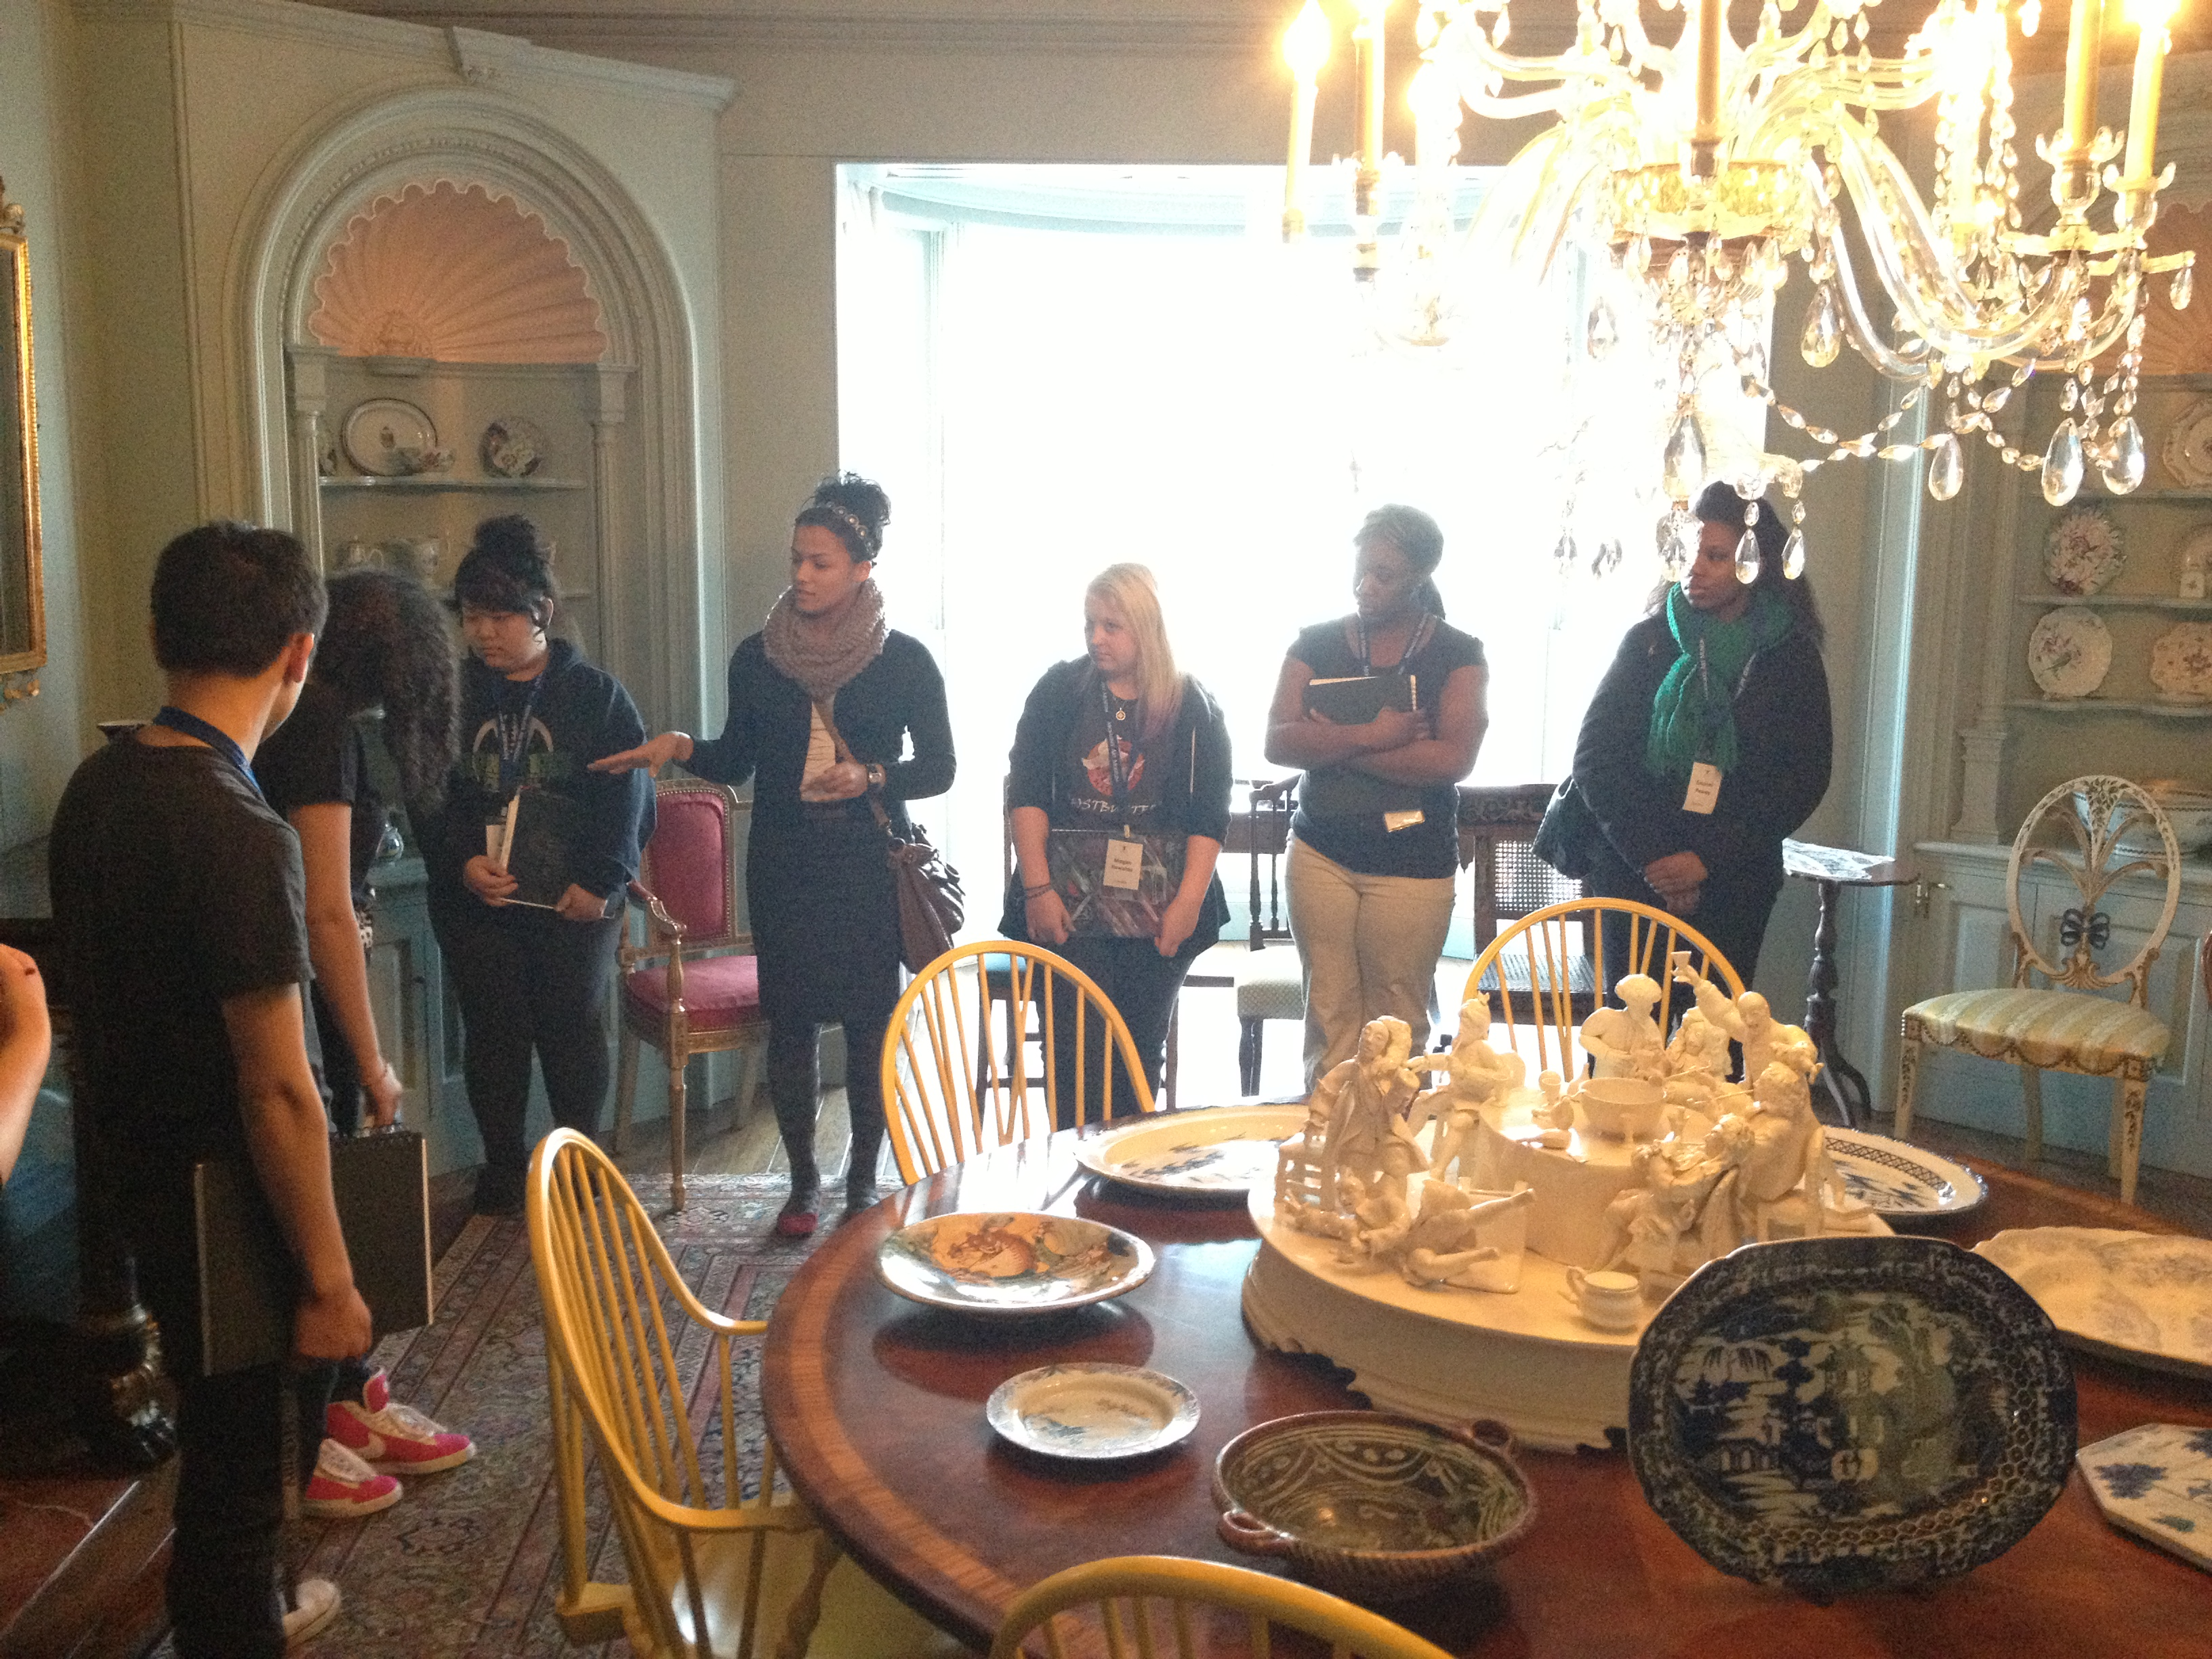 The Dining Room Group compared two objects. Photo by Chelsea Kelly